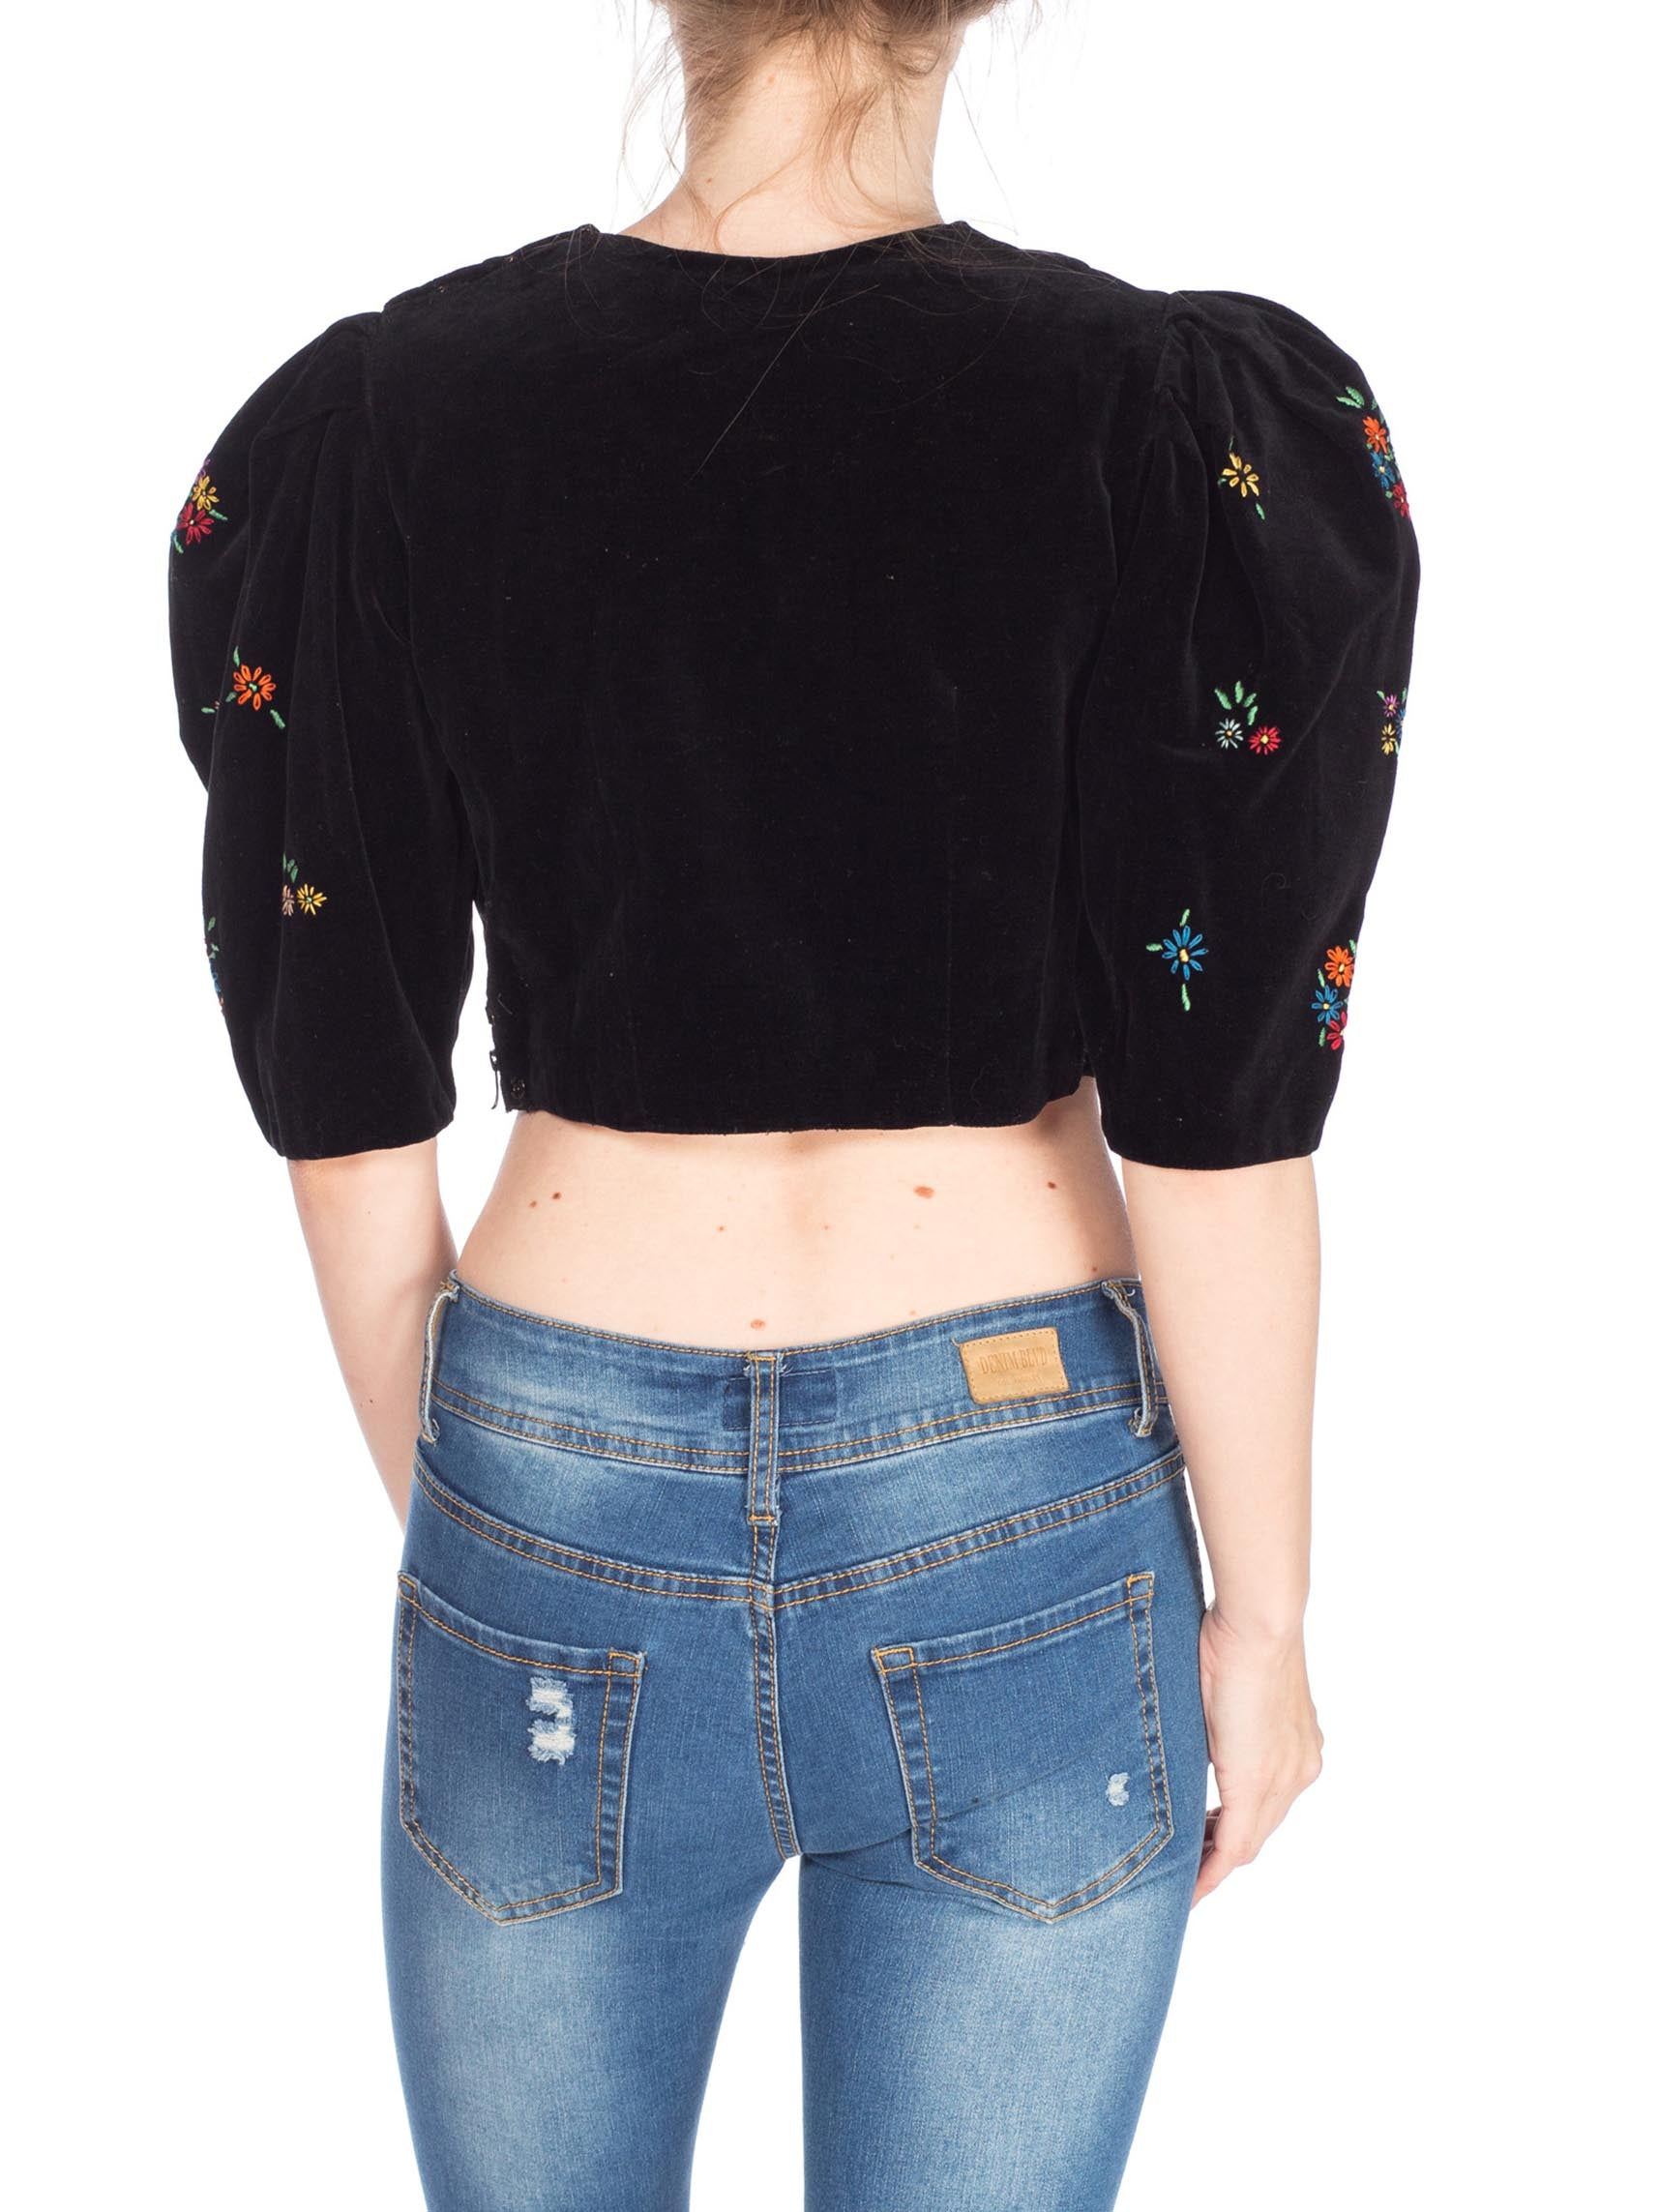 1940S Black Cotton Velvet  Top With Floral Embroidery & Red Wood Buttons